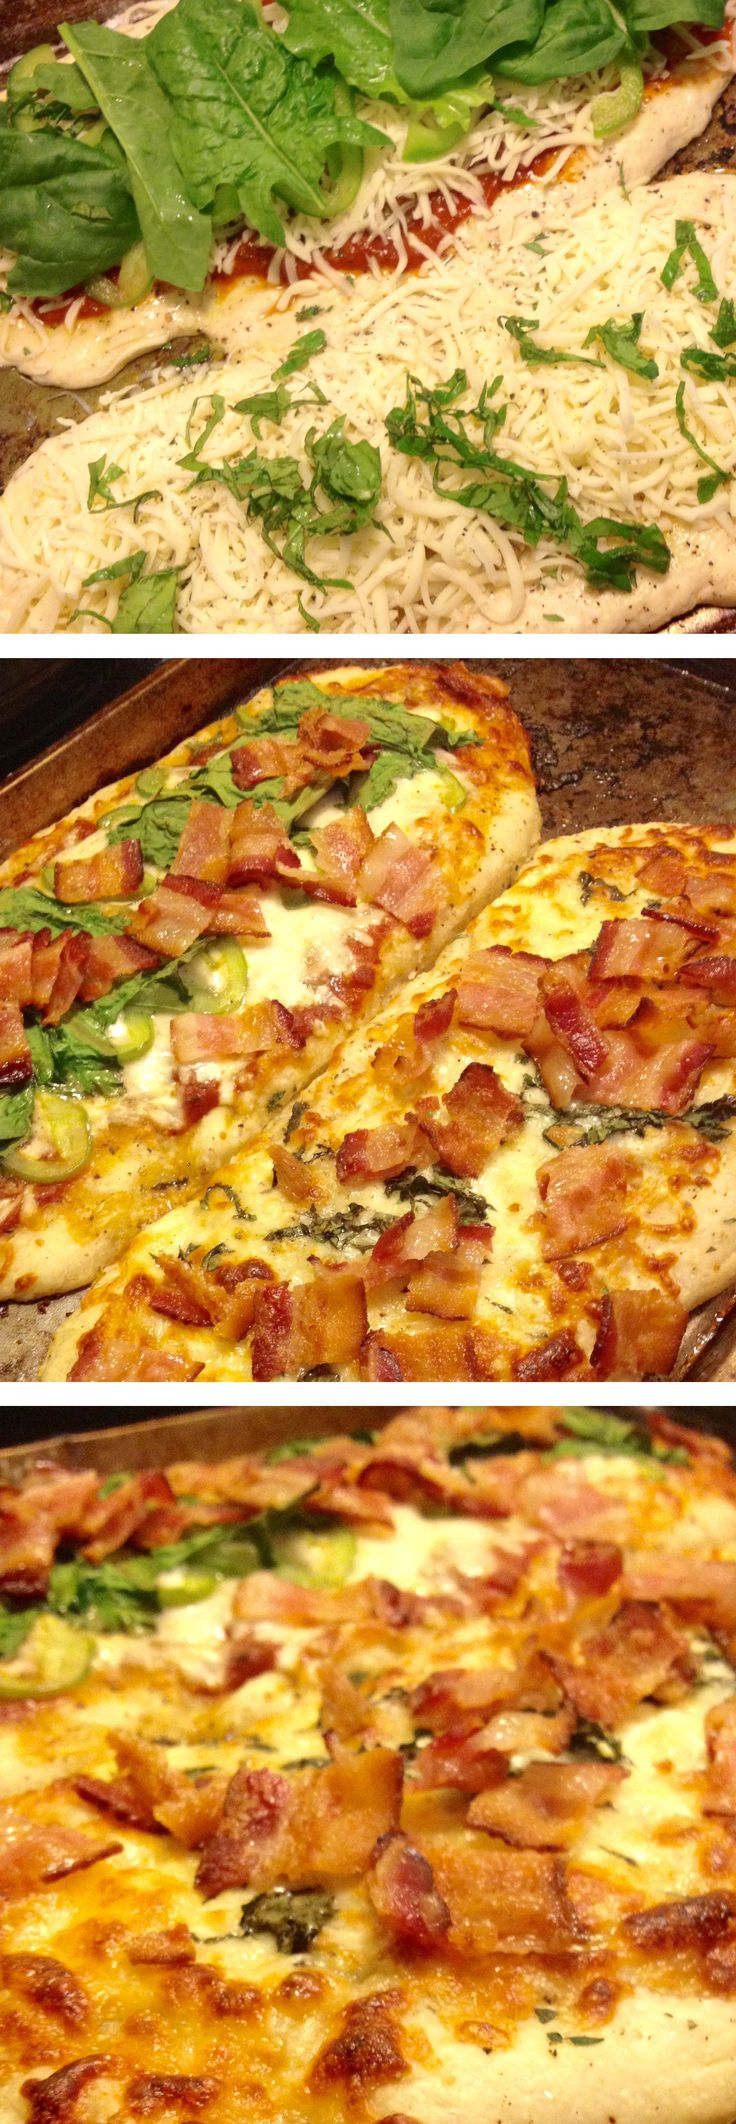 Take the super easy recipe for Garlic-Cheddar-Thyme Flatbread (www.cabotcheese.coop/grilled-cheddar-flatbread-with-garlic-thyme-oil), cook according to directions, then top with your favorites - we used pizza sauce, mozz, green peppers, fresh basil, fresh spinach, and BACON! and bake or grill for 5-10 minutes until everything is melty. so good